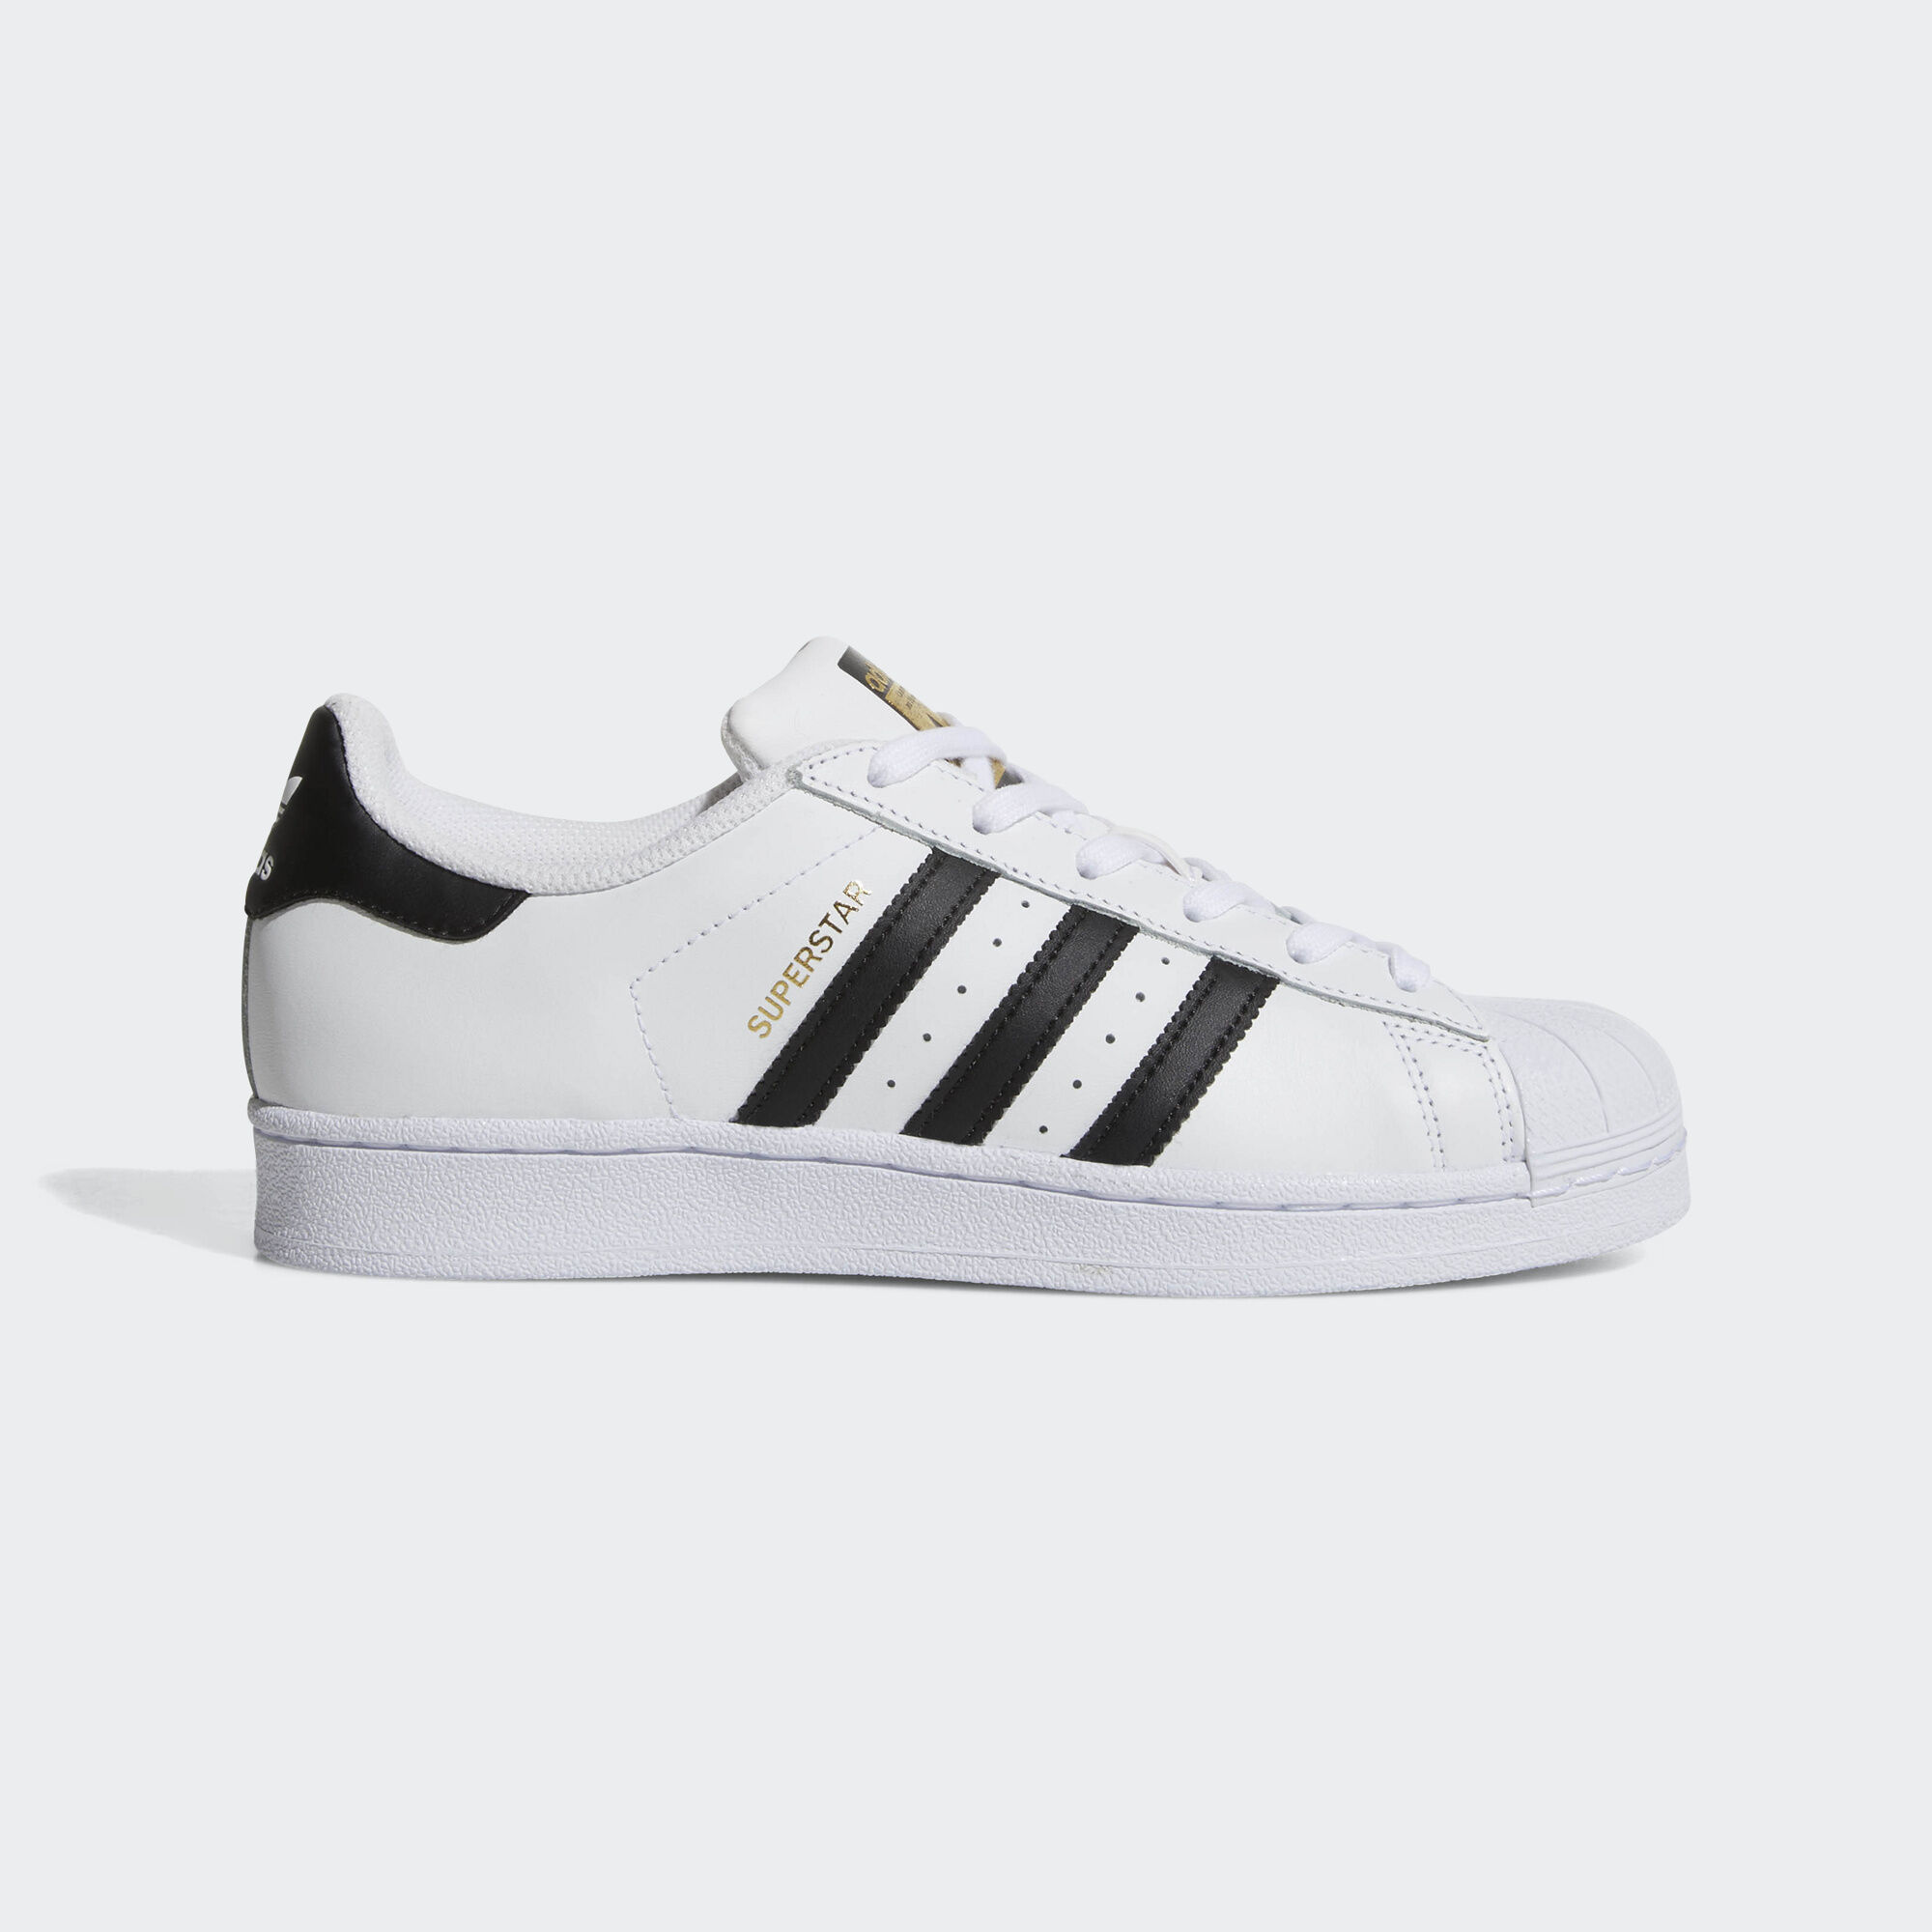 Adidas Superstar All White High Top